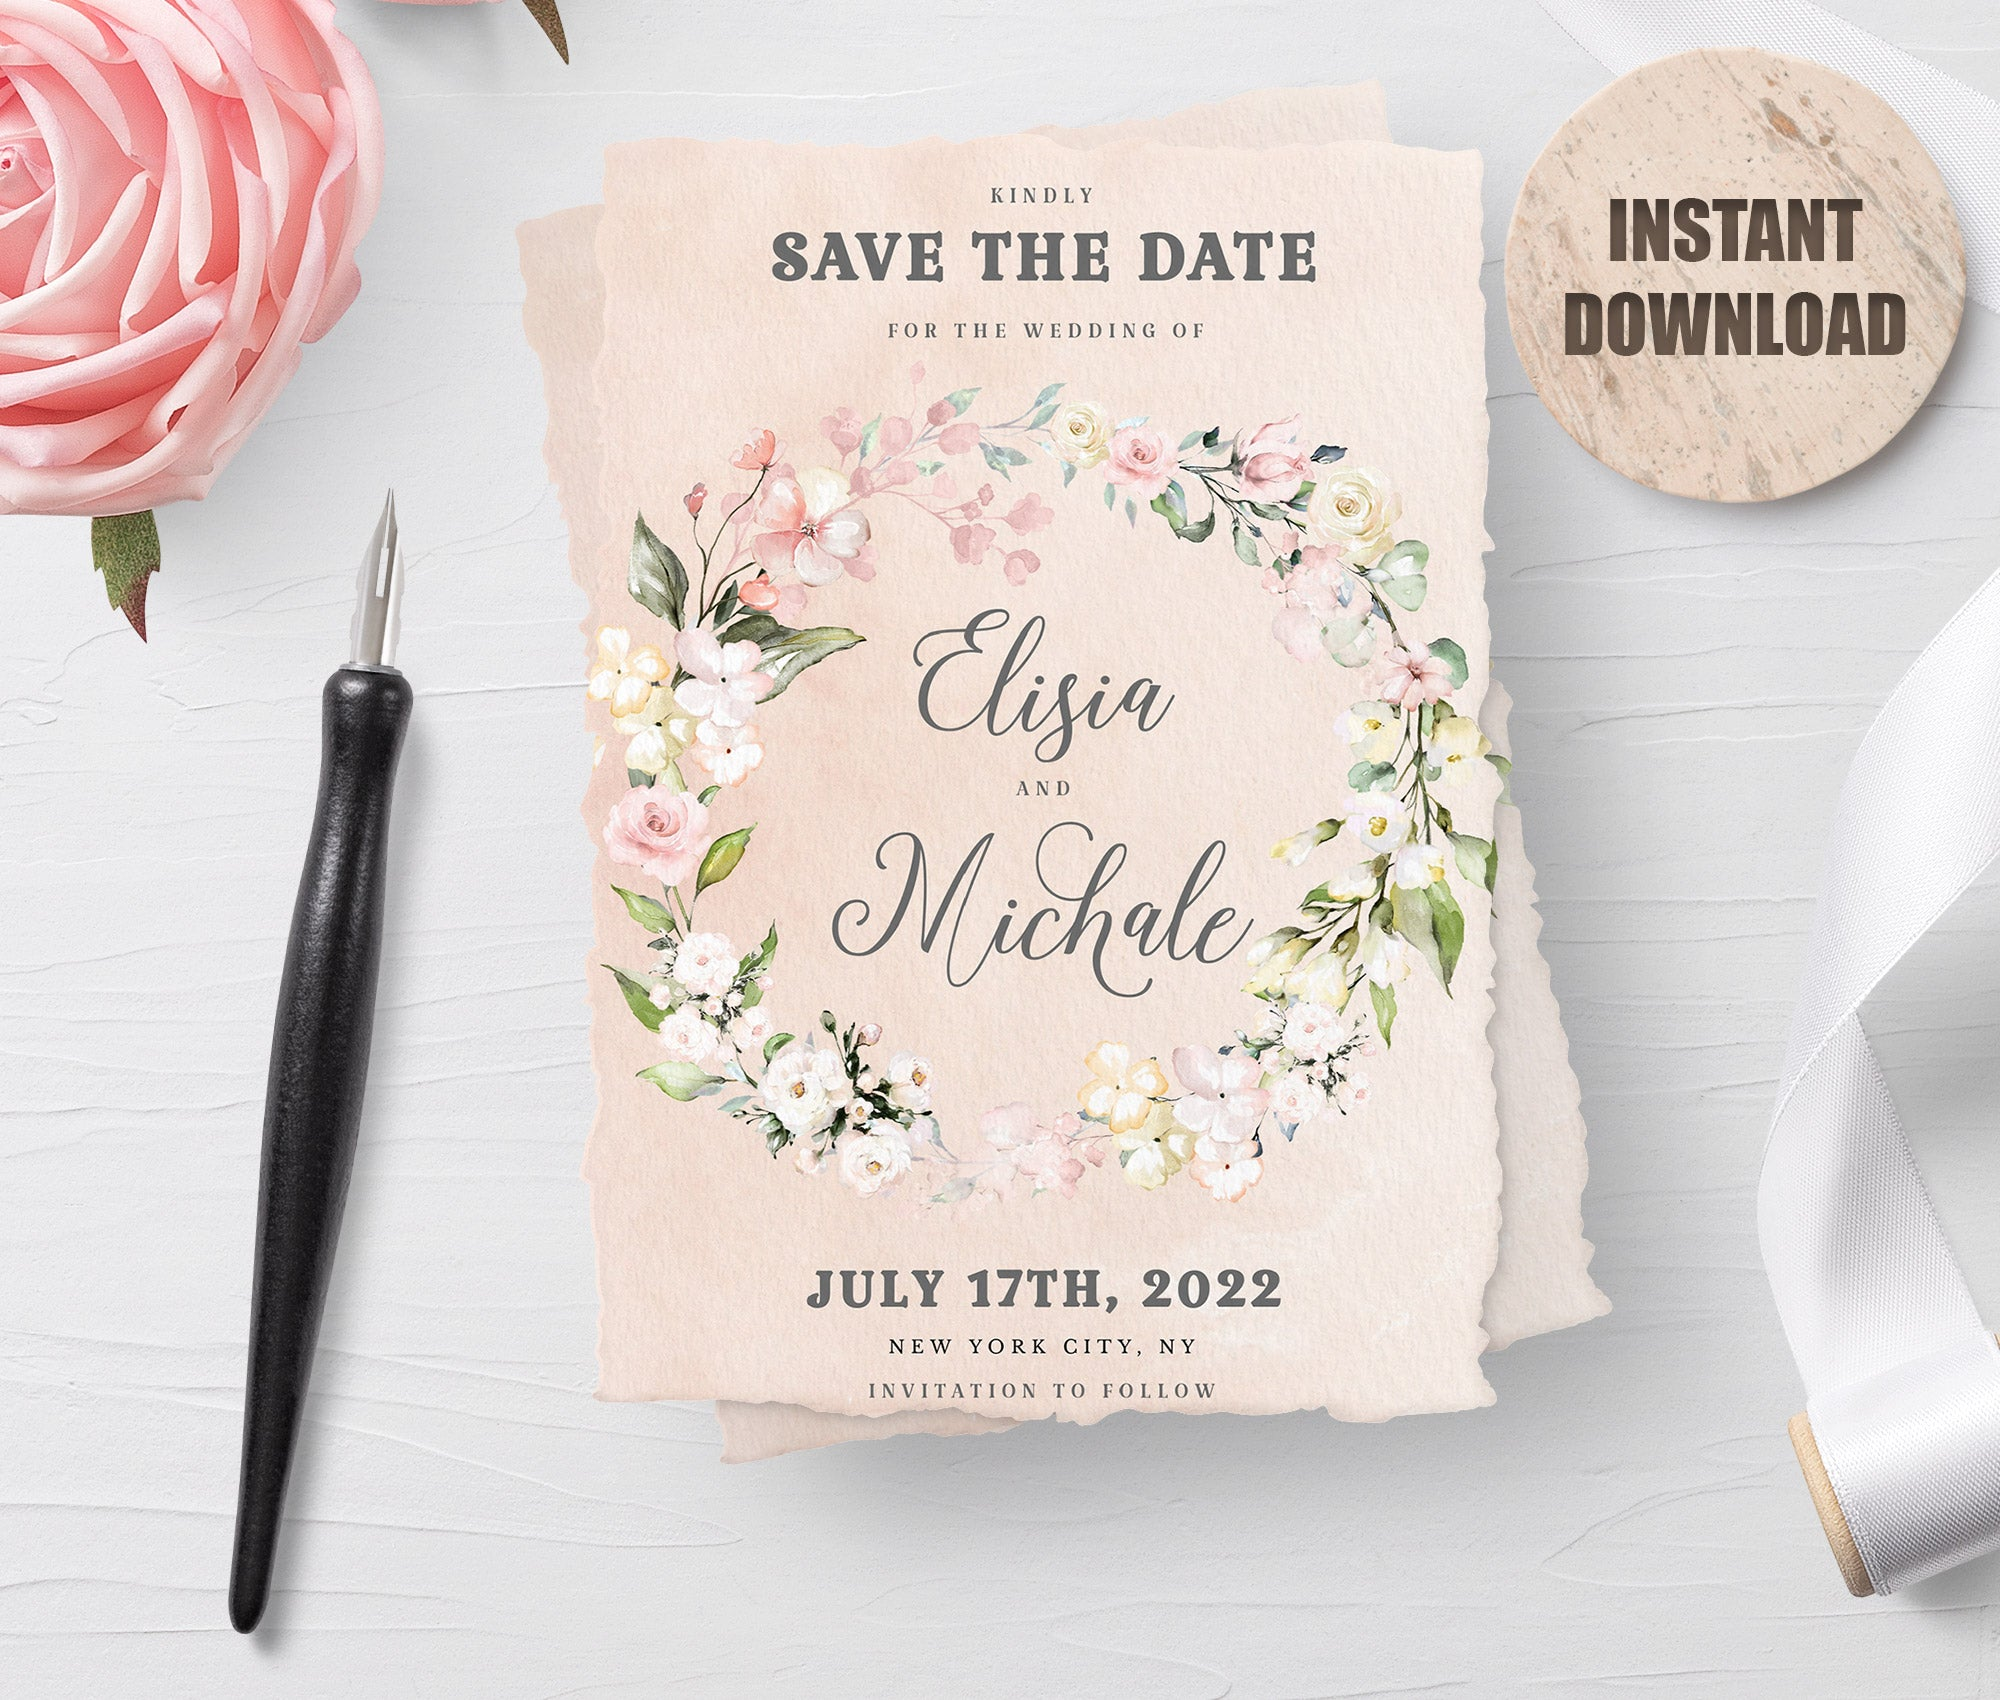 LOVAL Printable Save the Date Card set 5